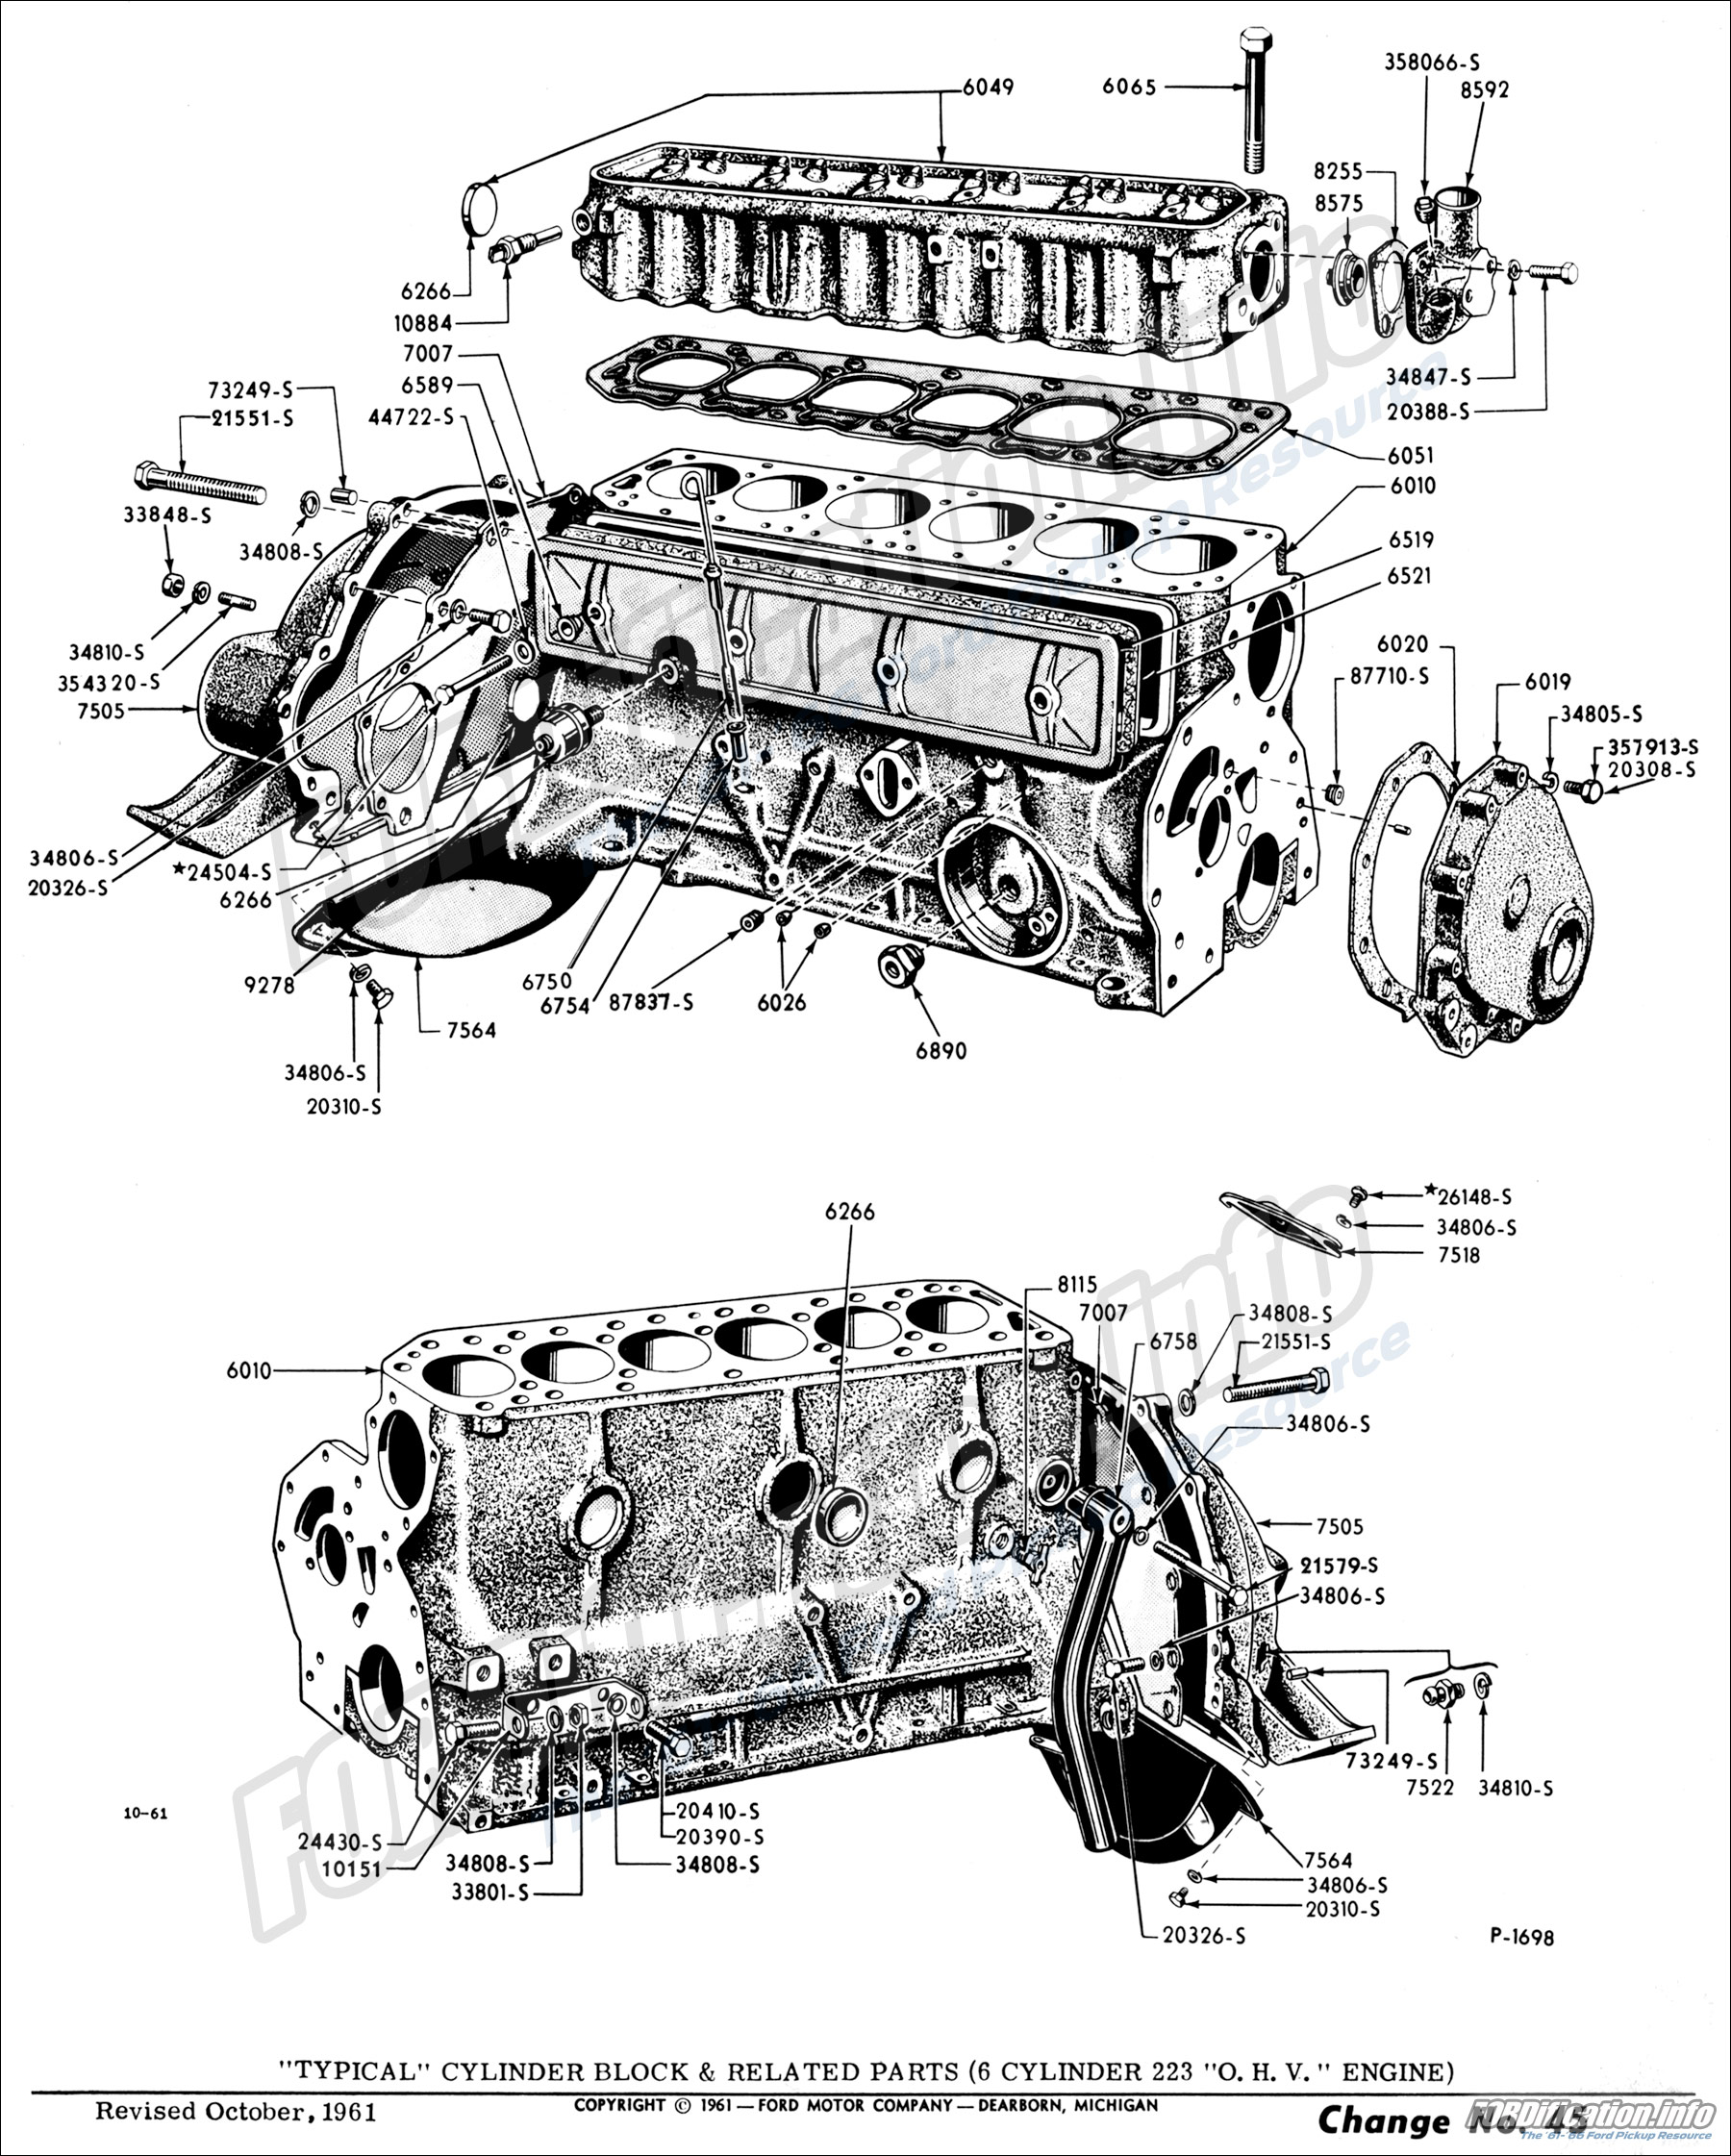 hight resolution of  typical cylinder block related parts 6 cylinder 223 o h v engine